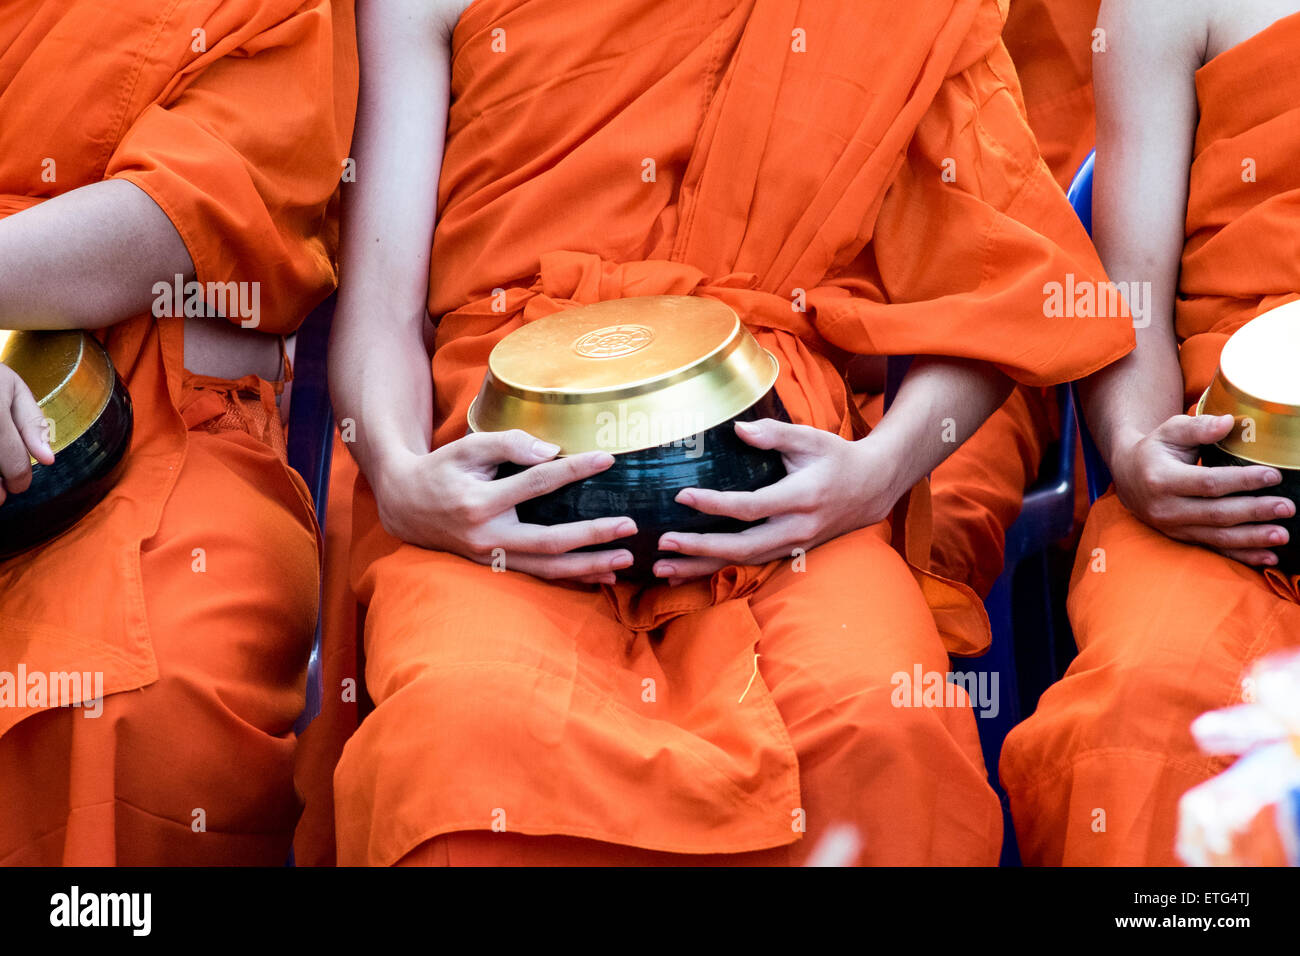 Asia. Thailand, Chiang Mai. Monks. Offering bowl. - Stock Image